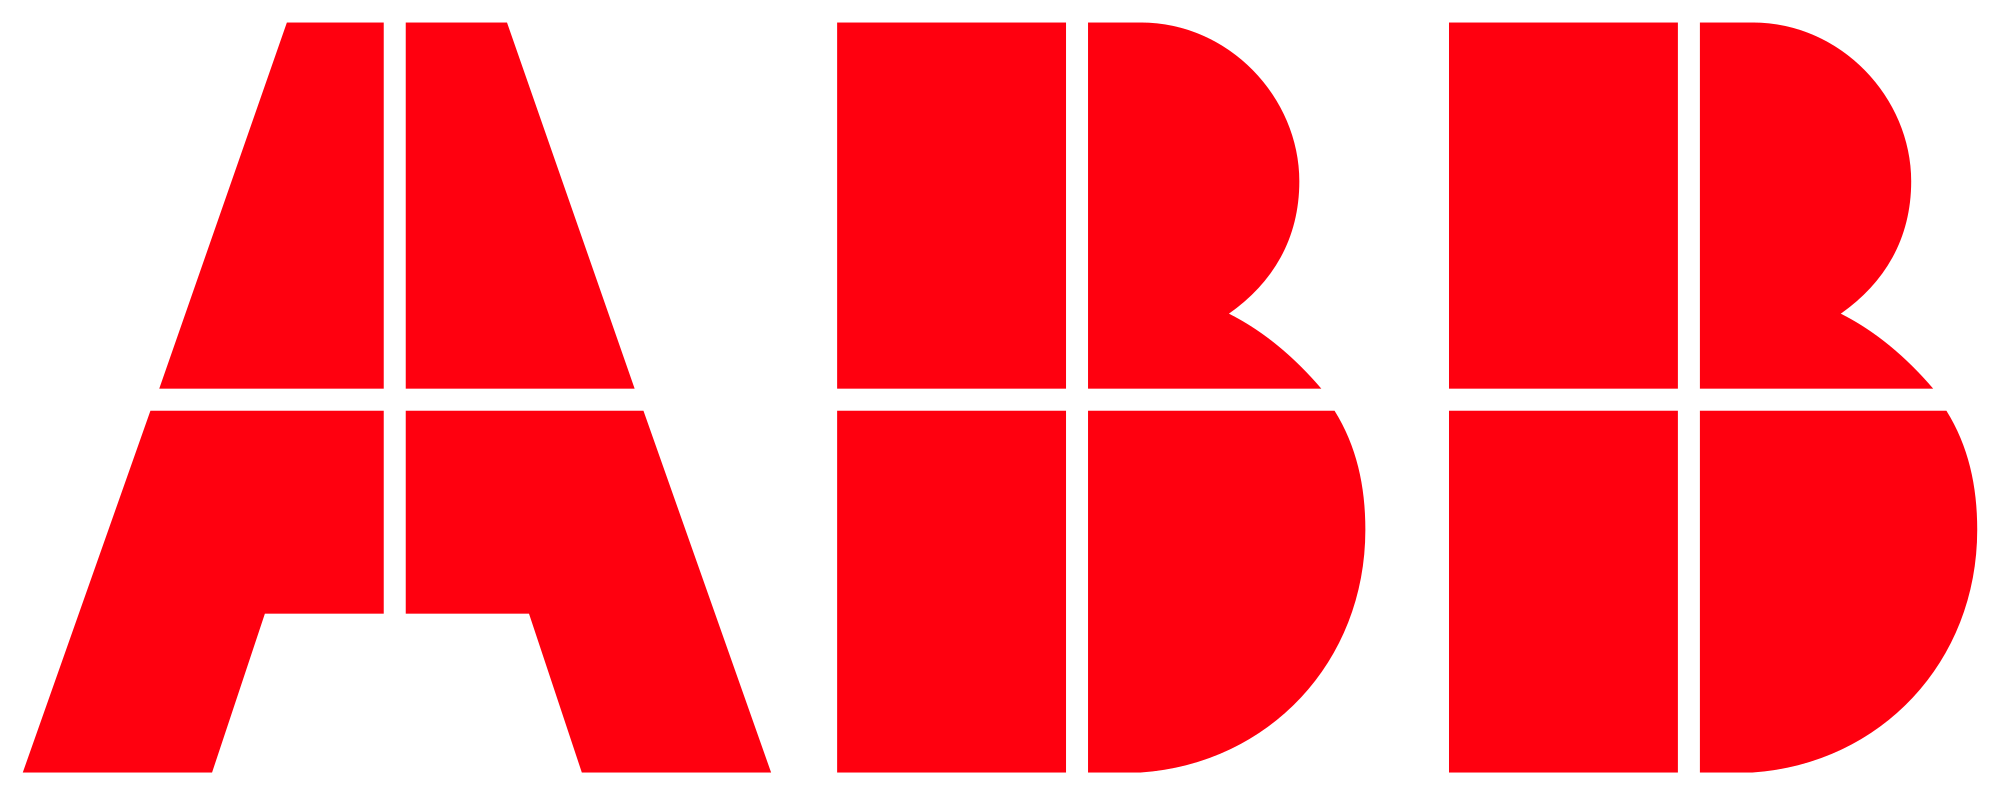 abb technology logo